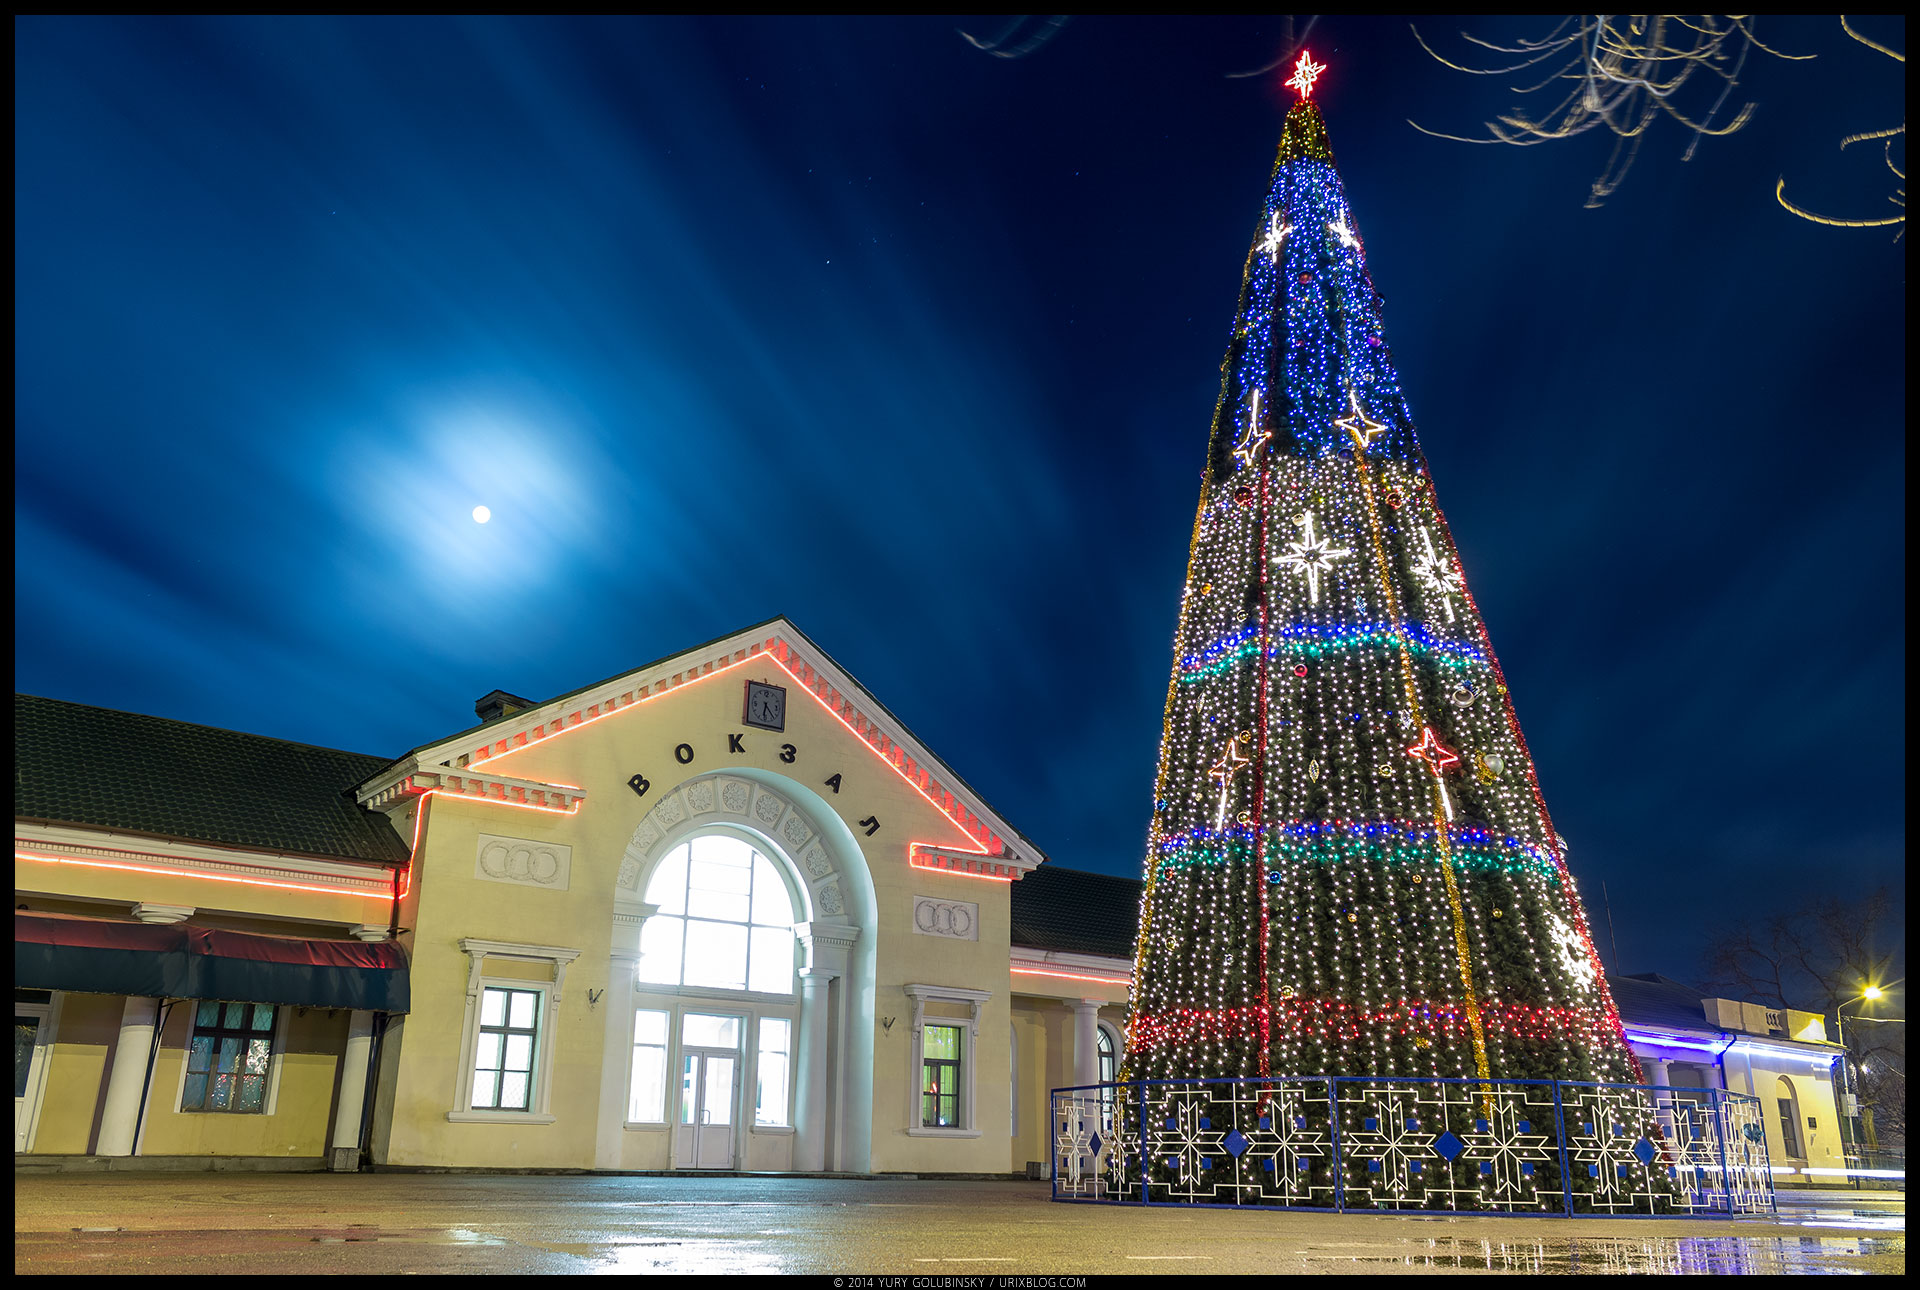 night, moon, square, railway station, building, new year tree, Christmas, Feodosia, long exposure, architecture, Crimea, Russia, winter, january, 2015